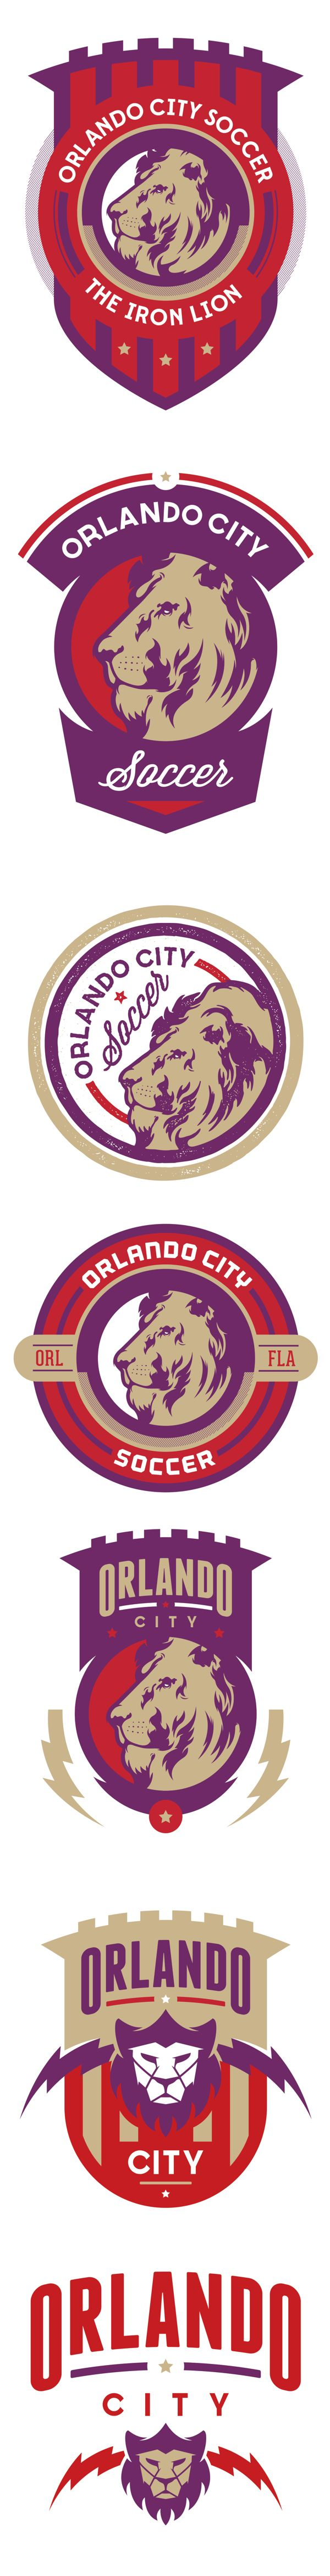 Orlando City Soccer Comps by Danger Brain, via Behance